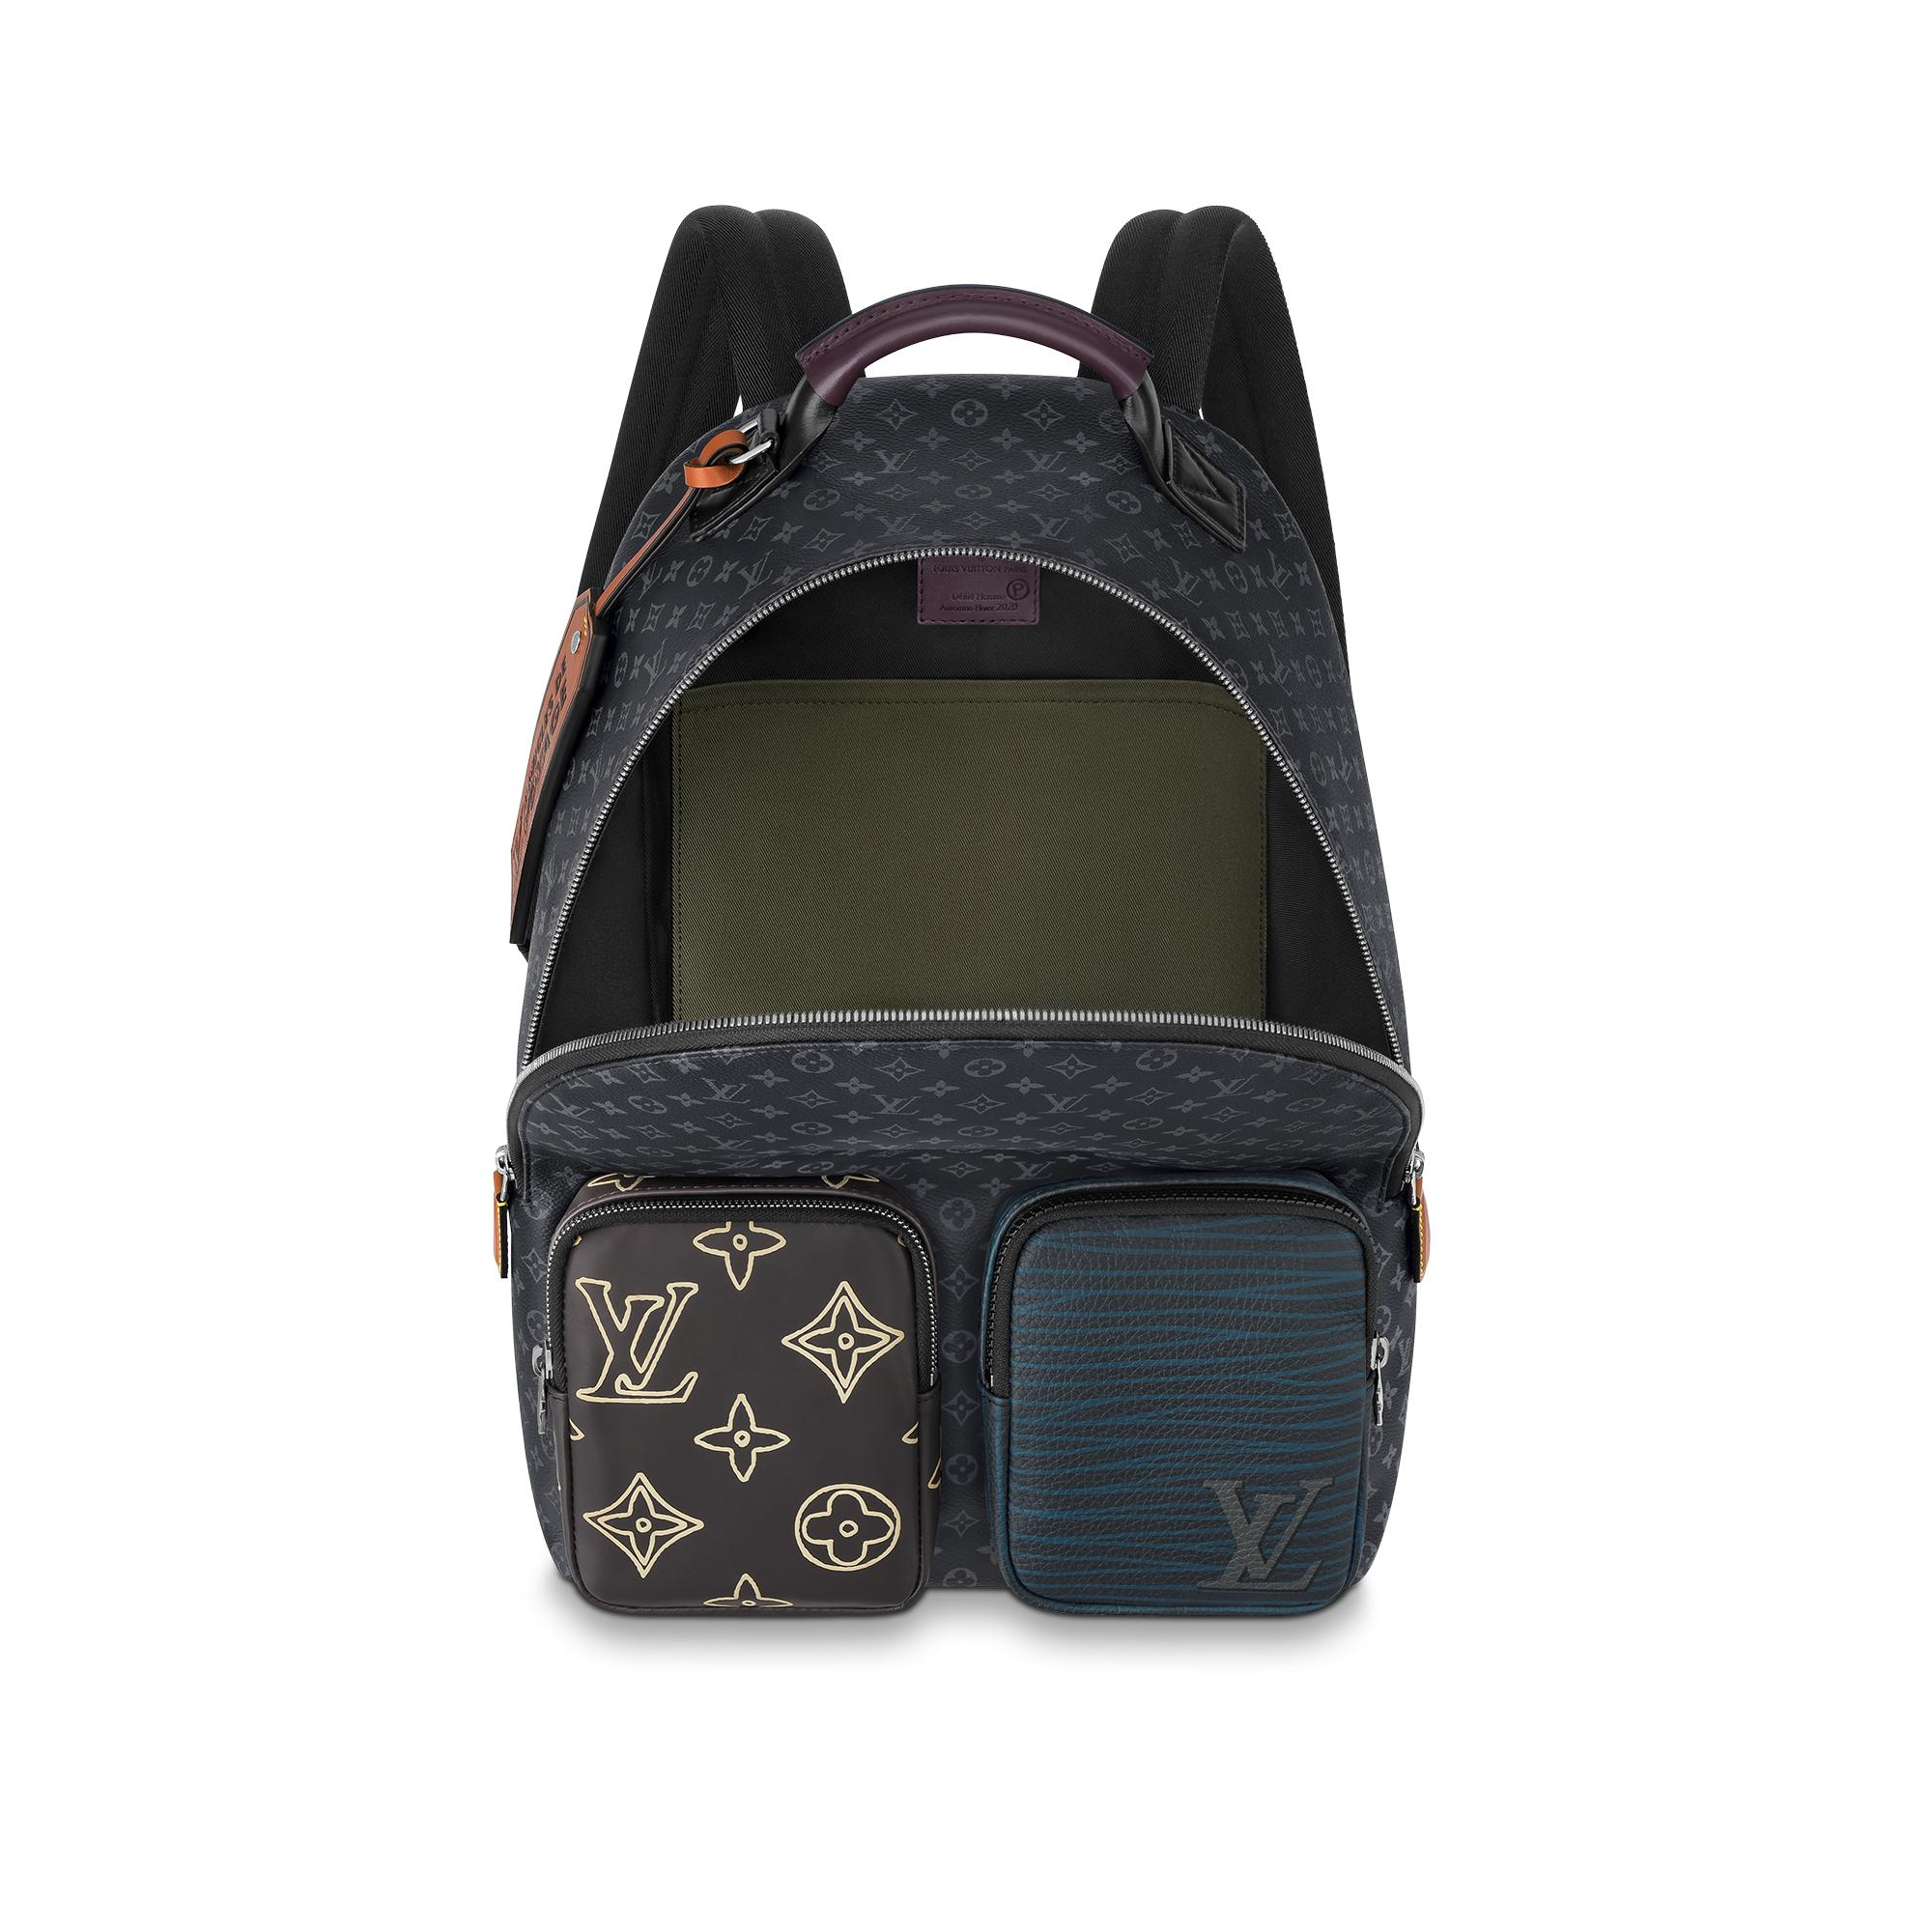 Backpack Multipocket Monogram Other Bags Louis Vuitton